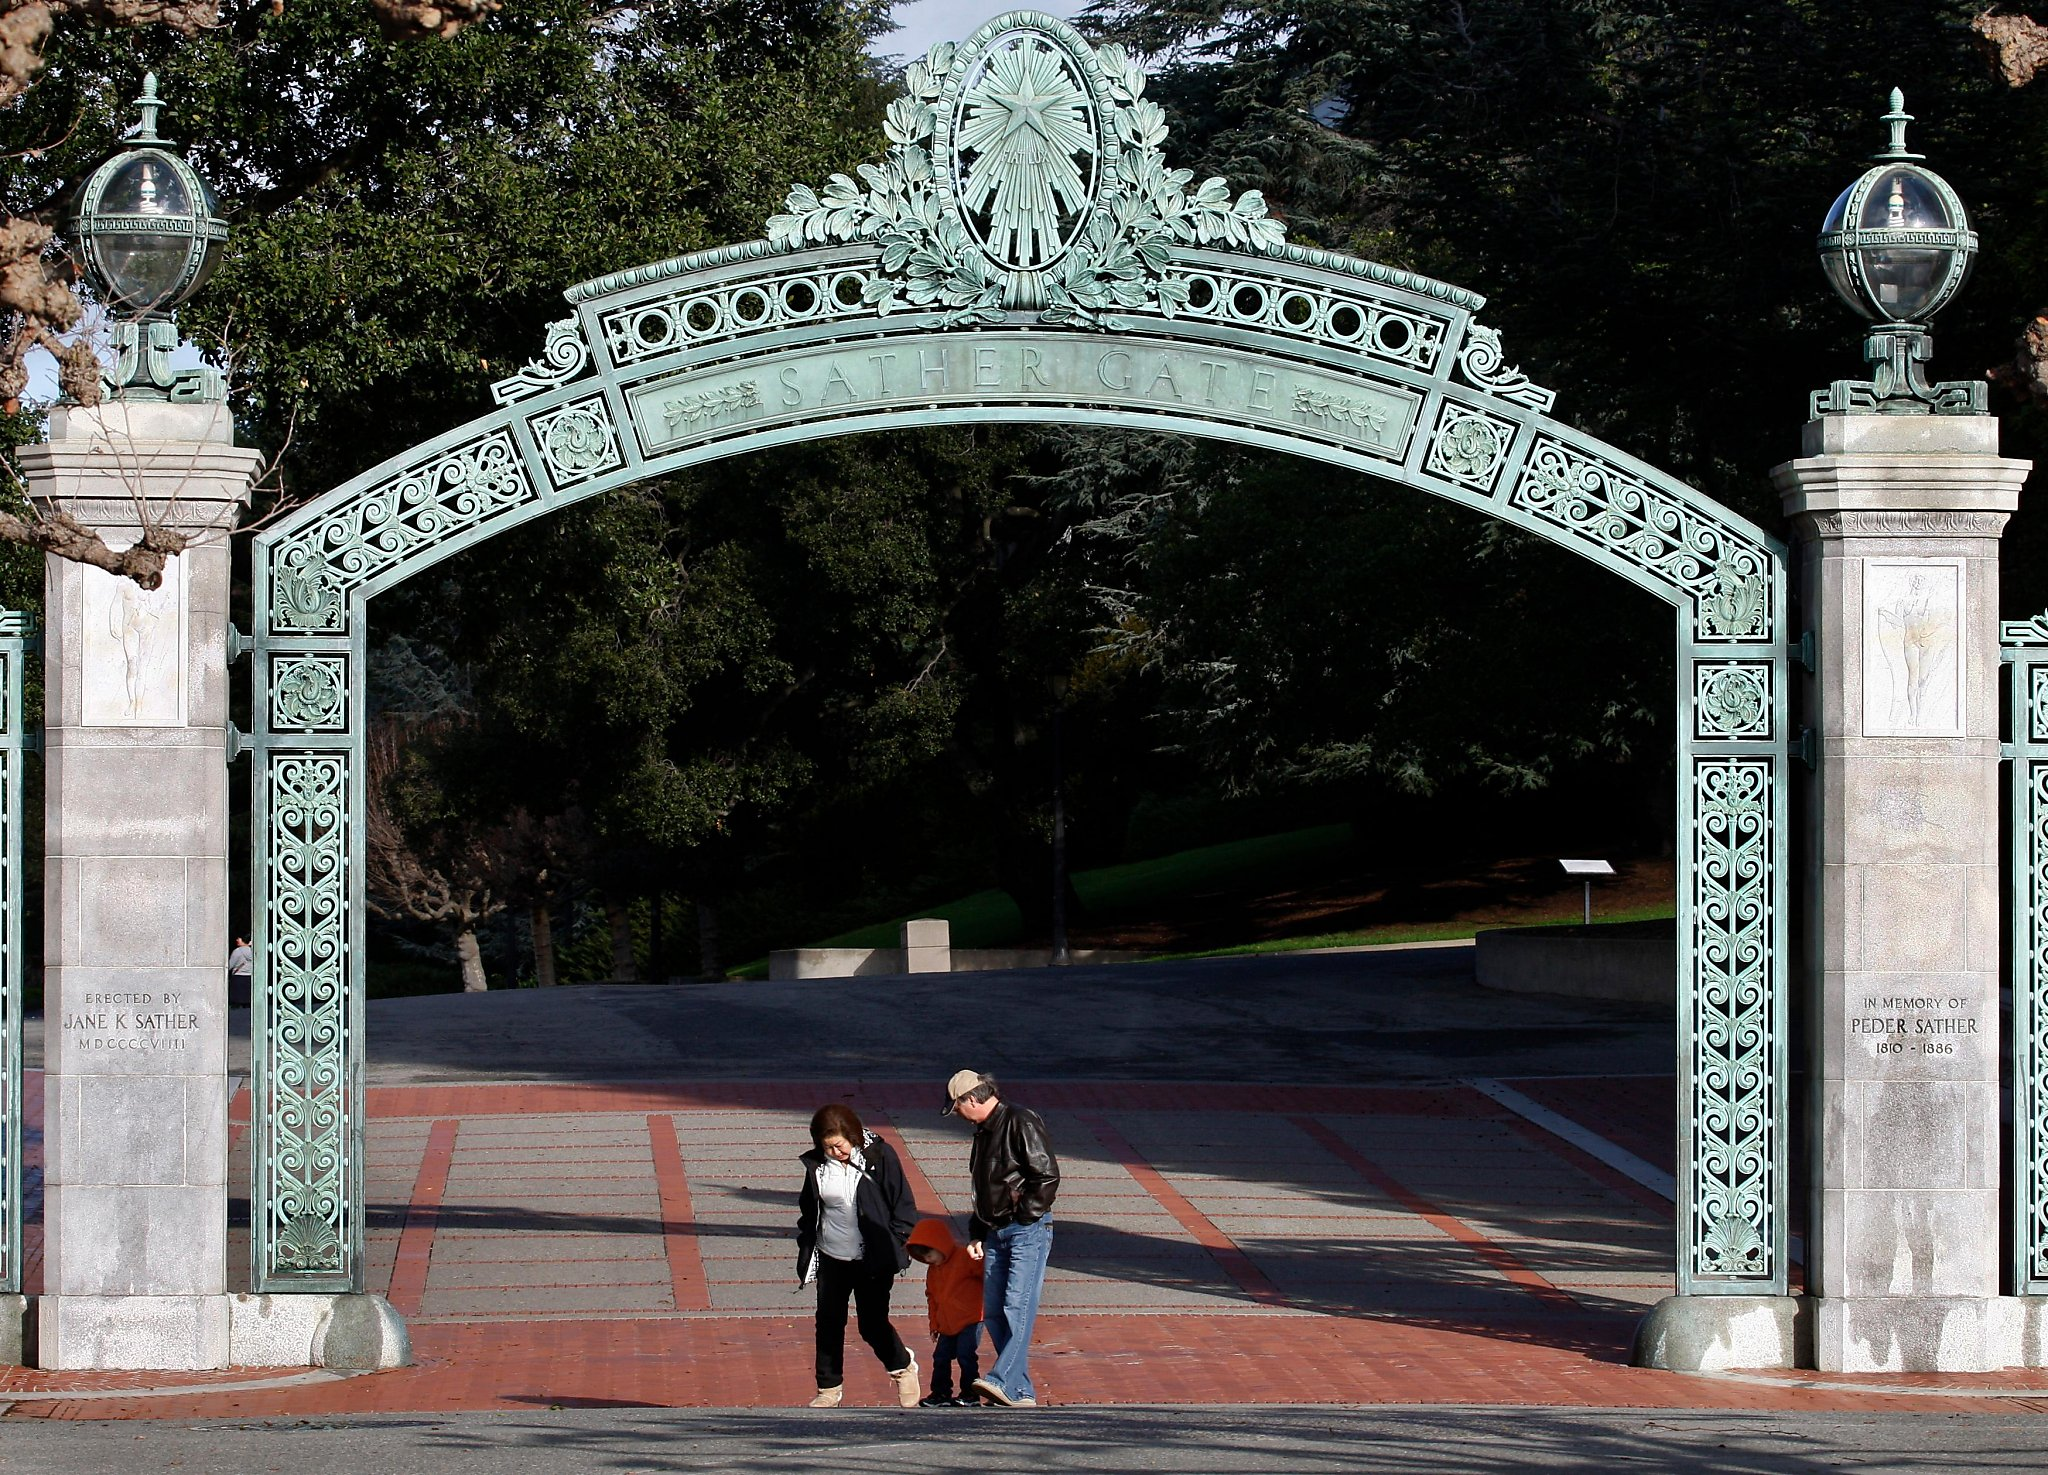 East Garage Uno Uc Berkeley Greek Groups Halt Parties After Sex Assaults Reported